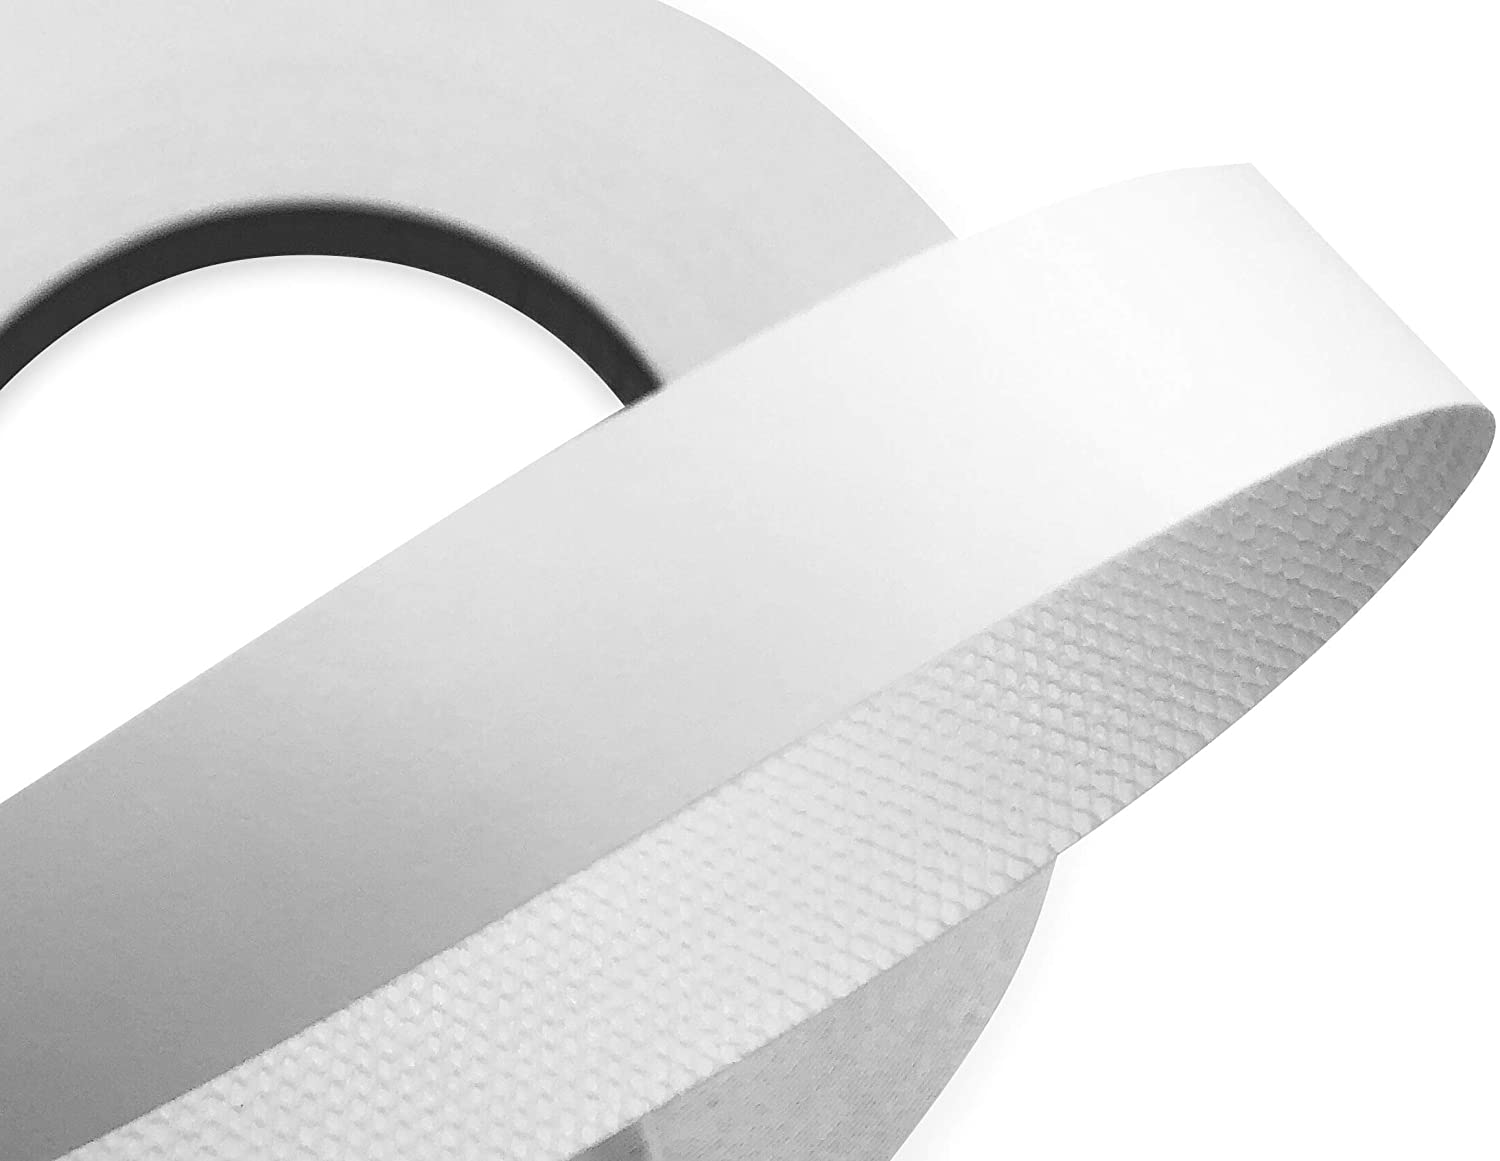 1-1//2 inch x 250 ft Furniture Restoration Easy Application Iron-On Edging for Cabinet Repairs Pre-glued Flexible Edging Edge Supply White Melamine 1-1//2 inch X 250 ft roll of White Edge Banding